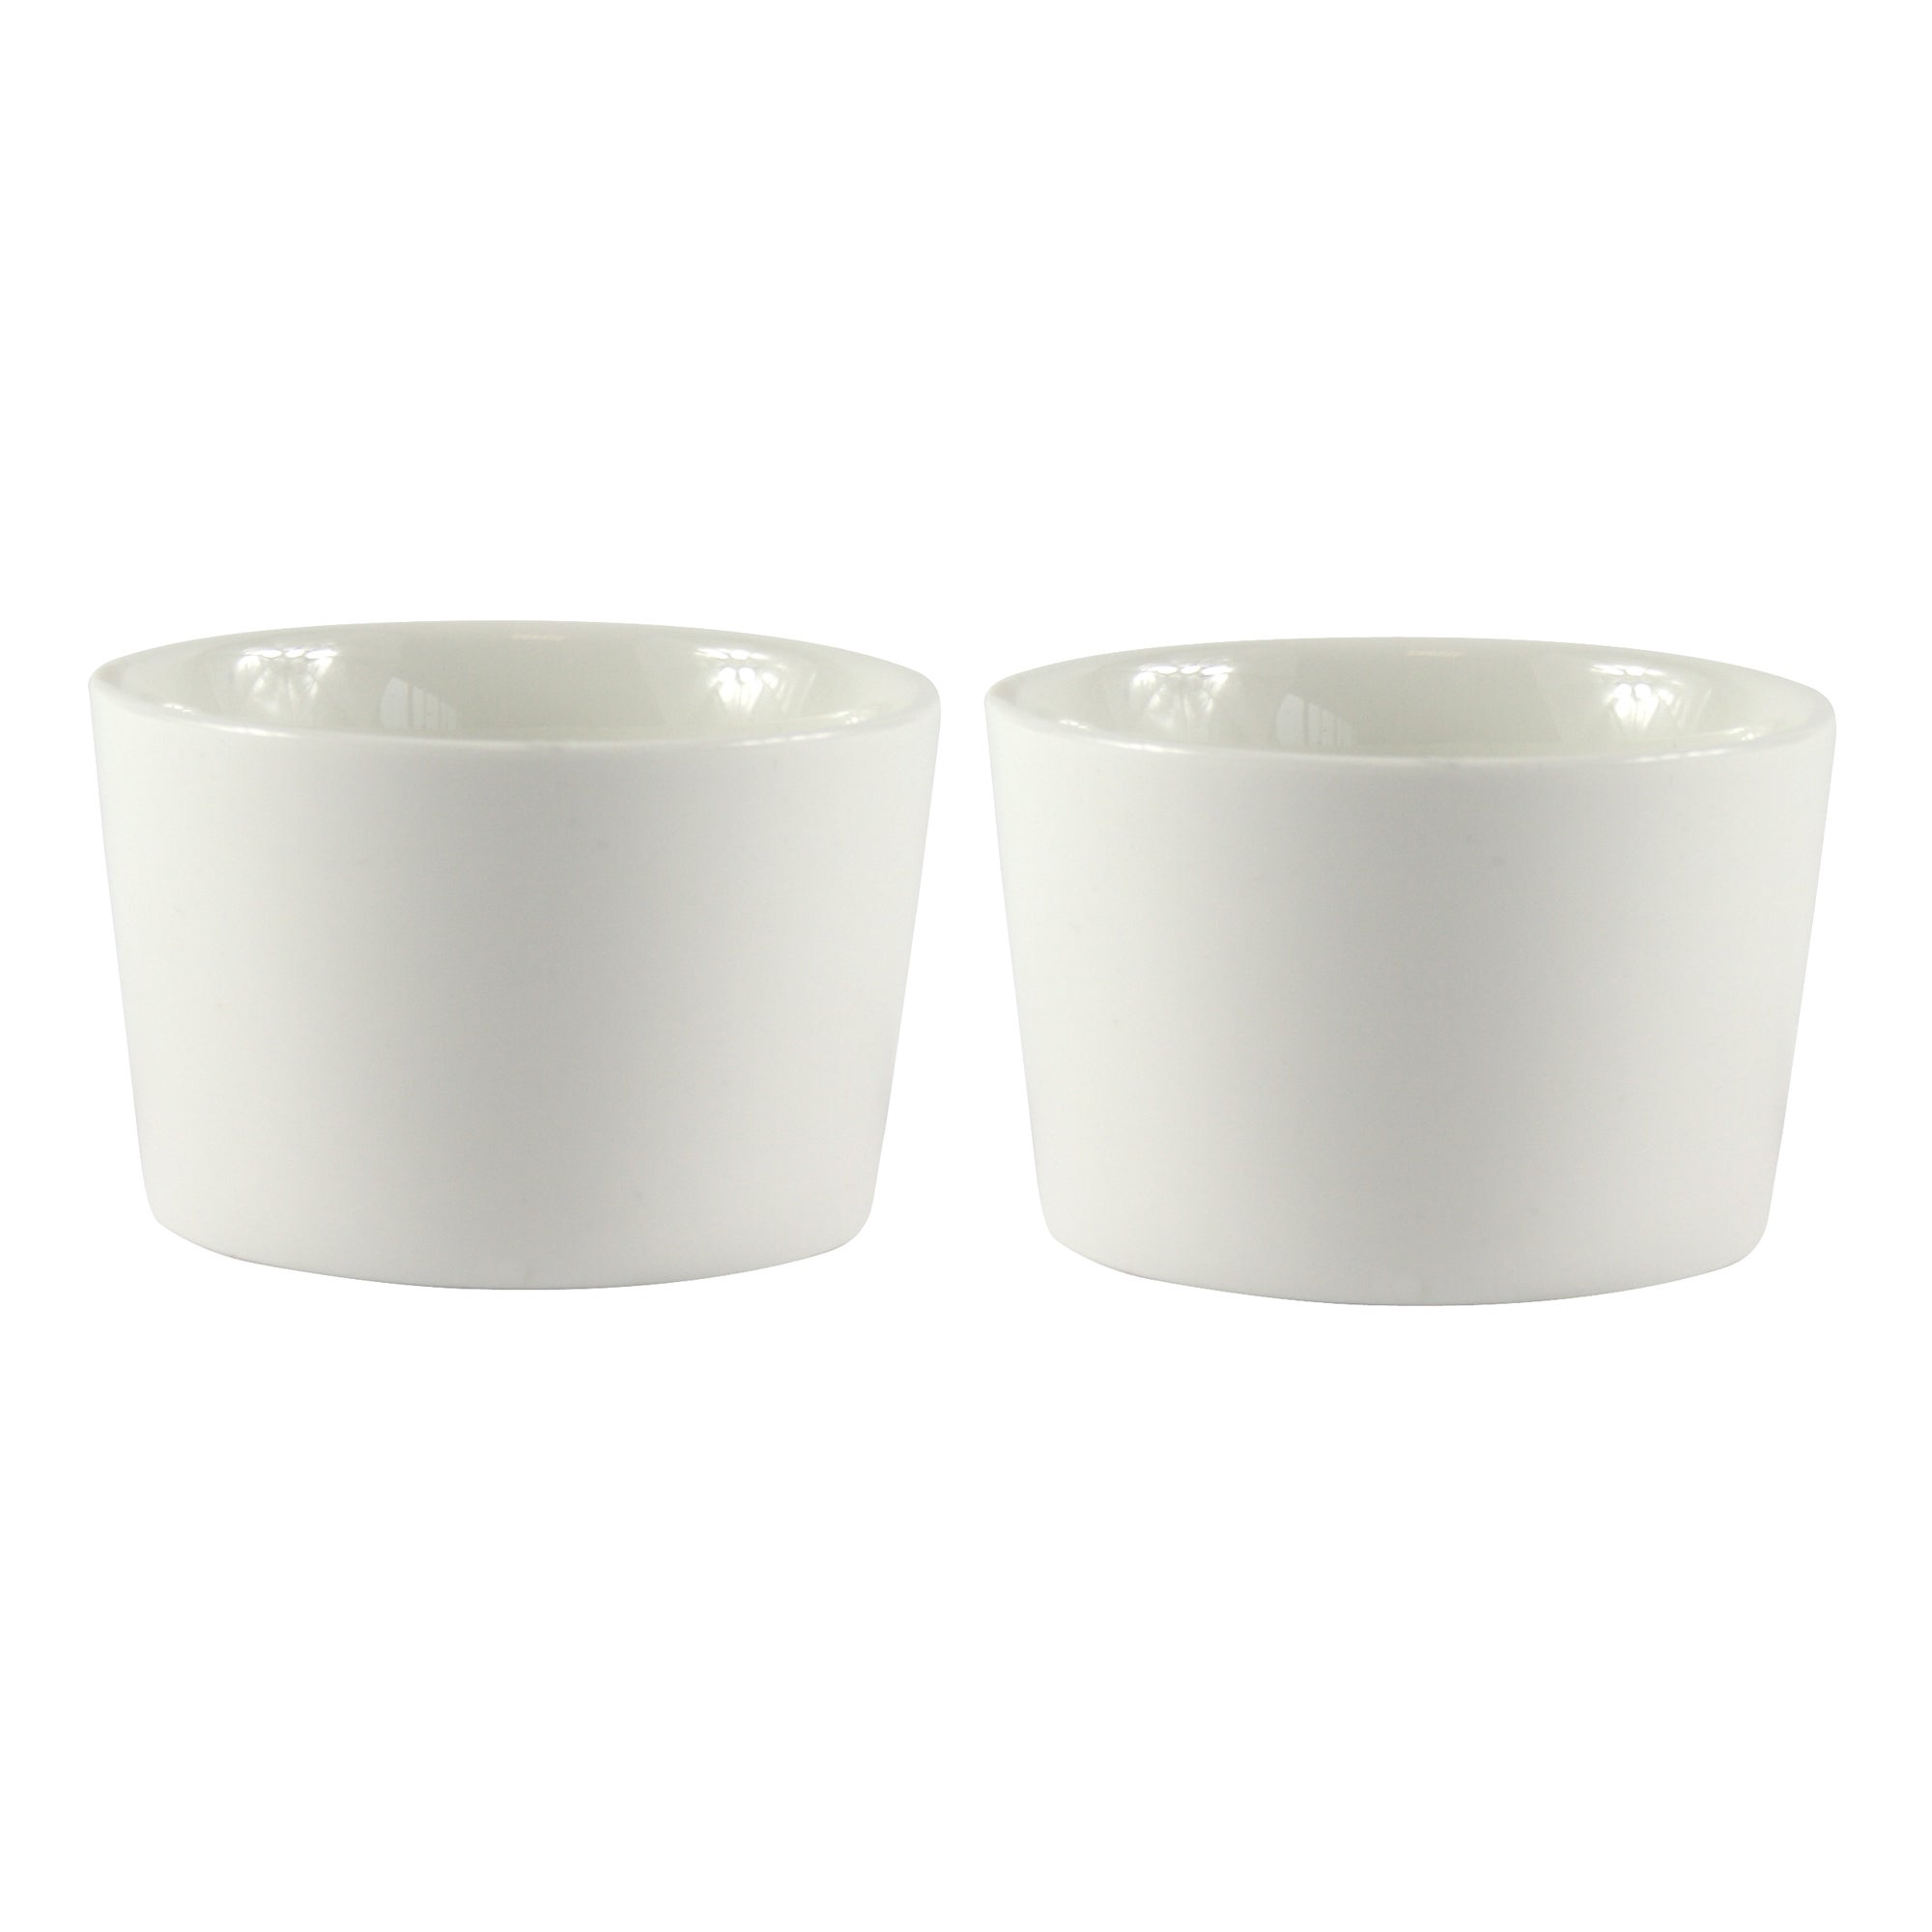 Pausa Collection Set of 2 Ramekins